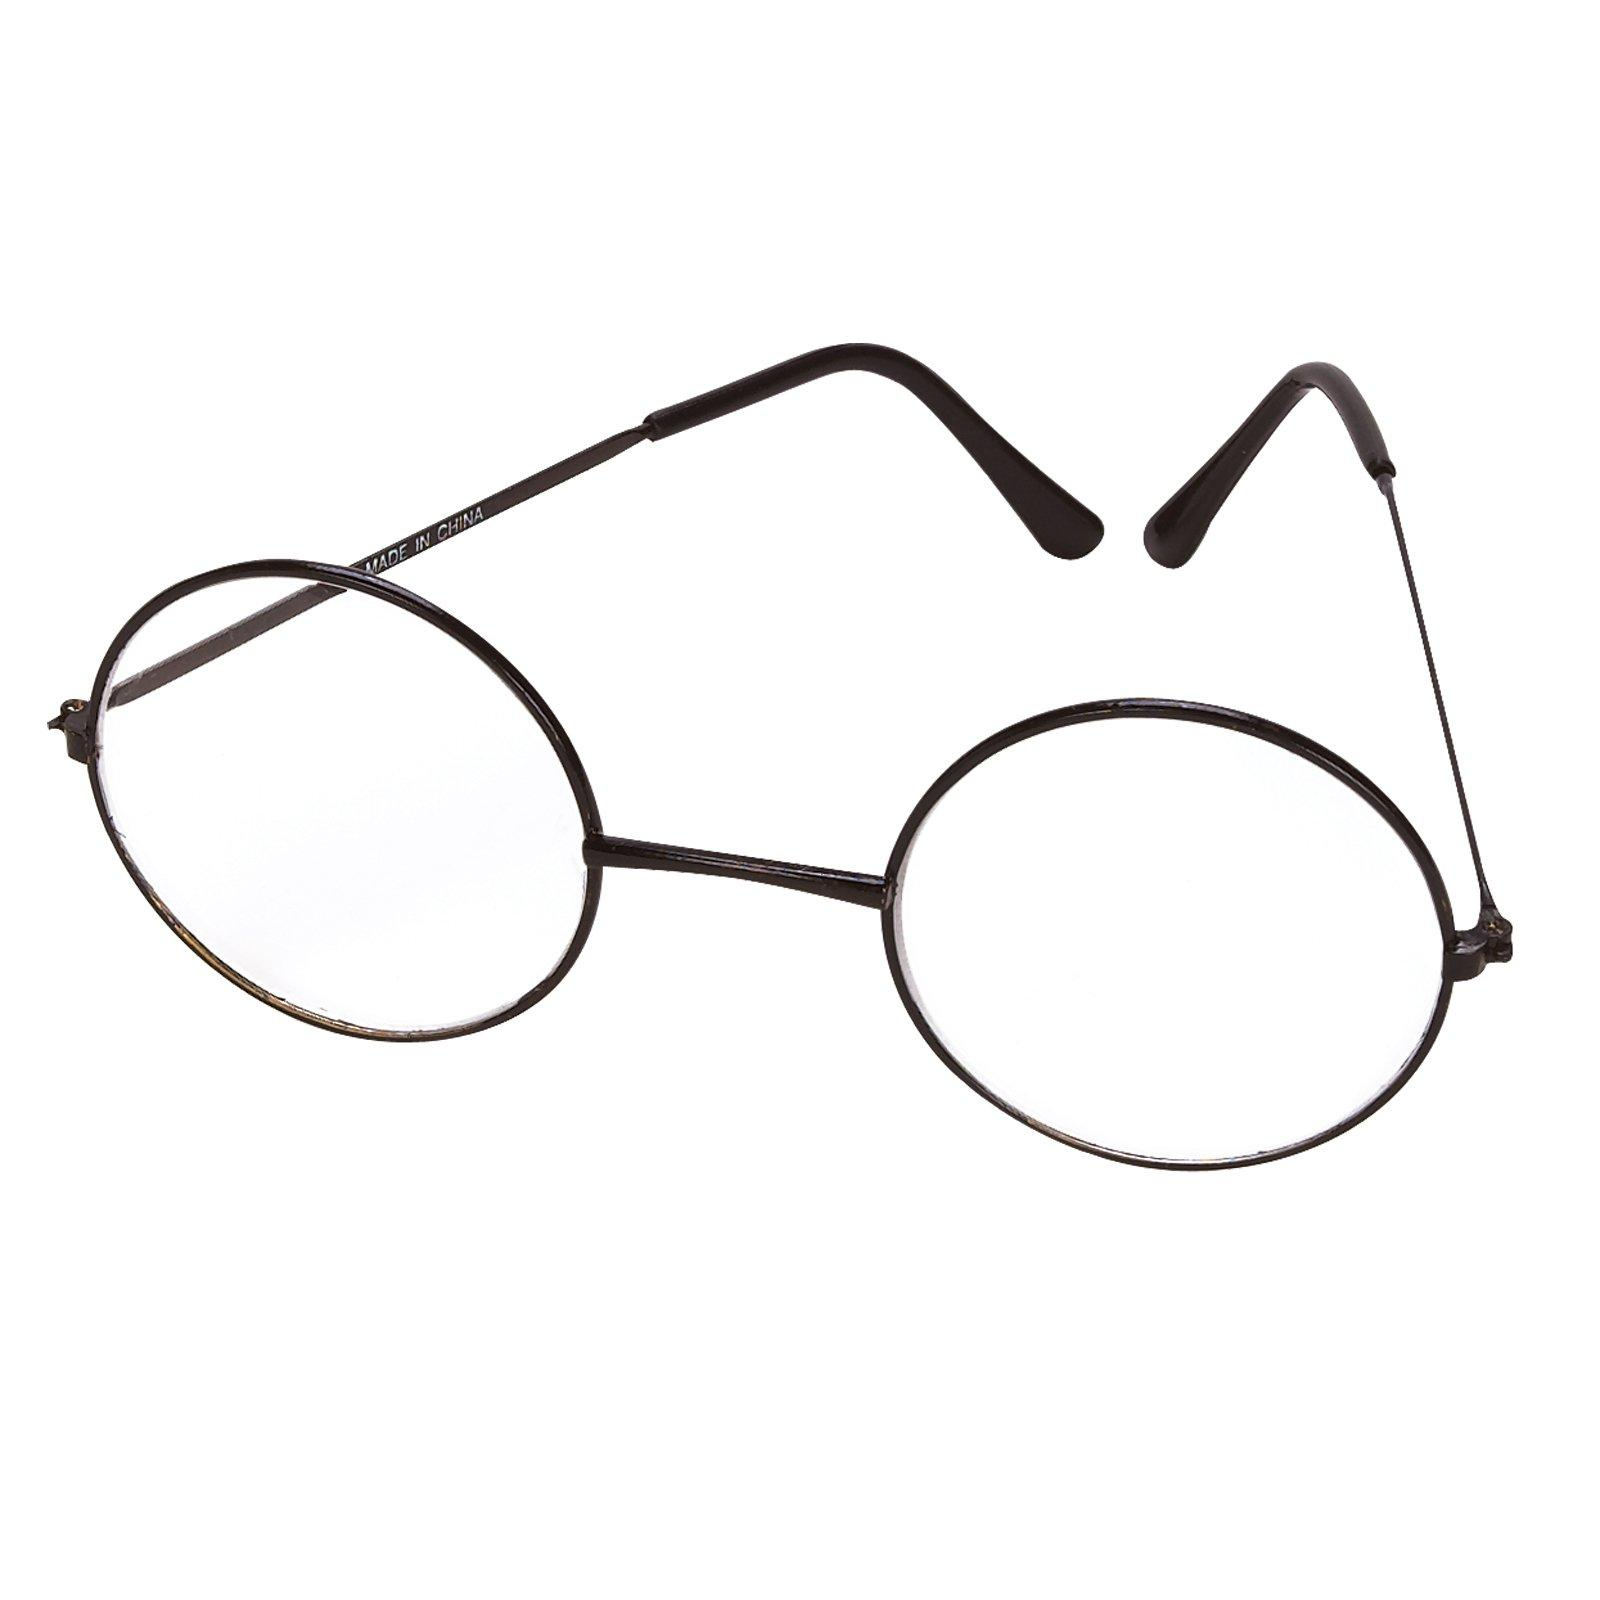 Free Eyeglasses Cliparts Download Free Clip Art Free